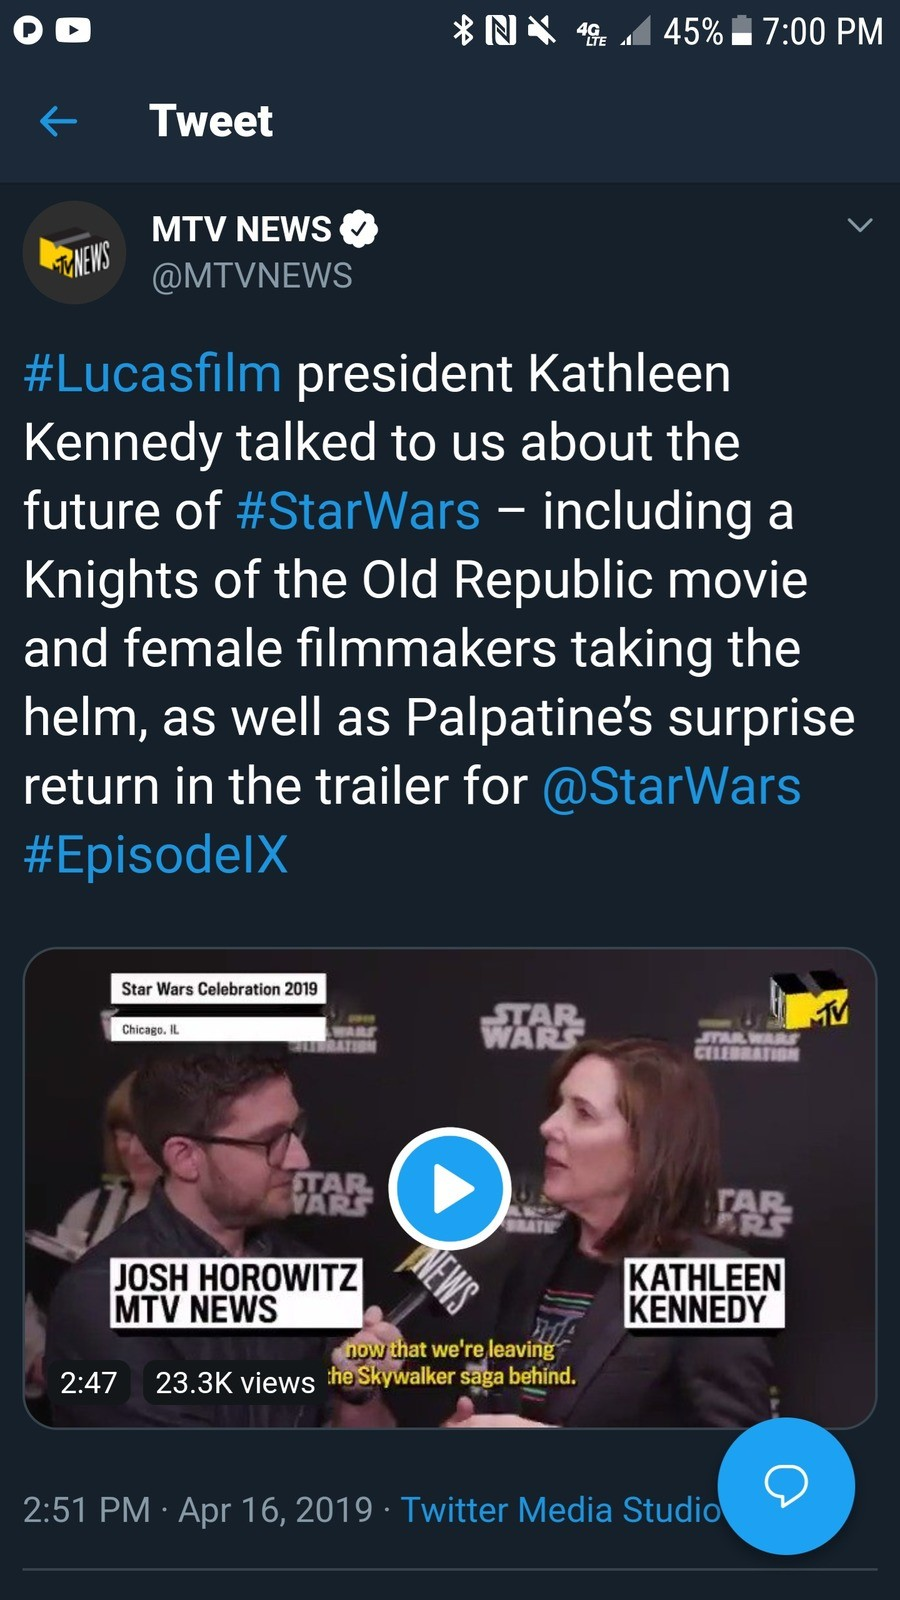 NO,NO NO ING NO. KEEP YOUR FILTHY HANDS OFF OF THE OLD REPUBLIC, DISNEY!.. >Disney Star Wars movie >Video game movie >Made by women I'd rather rewatch Pixels than subject myself to this.